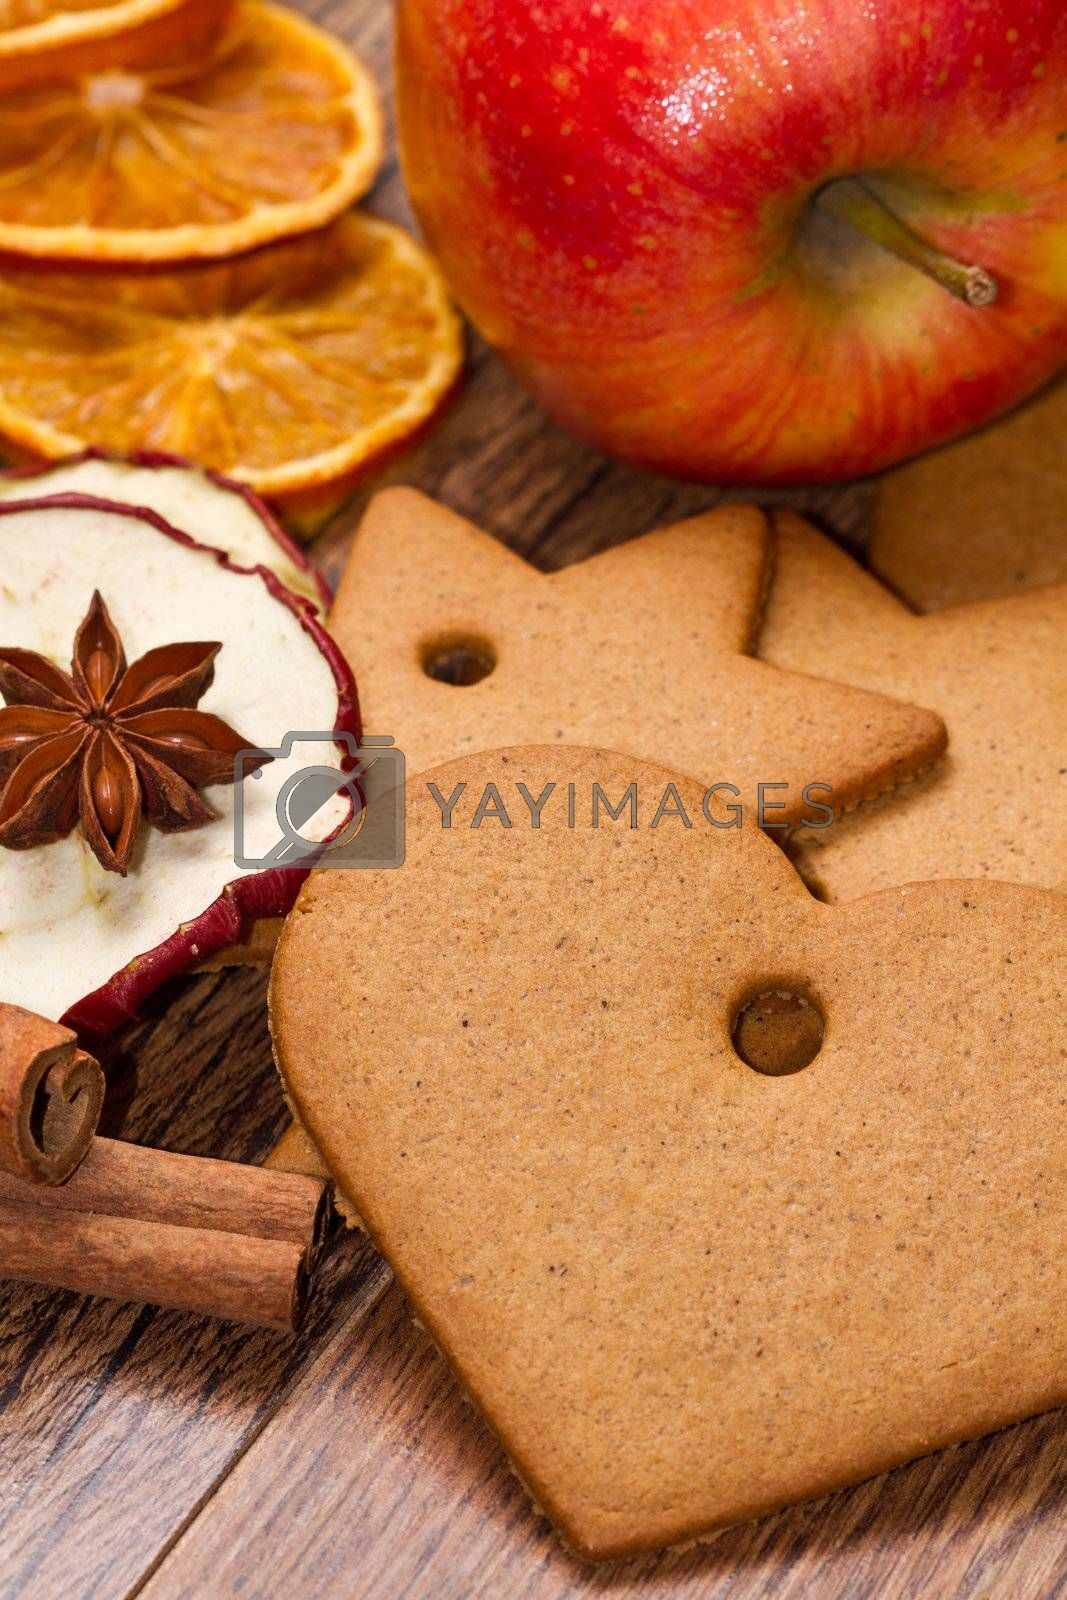 fresh apple with biscuit,cinnamon and fruit dried on wooden table